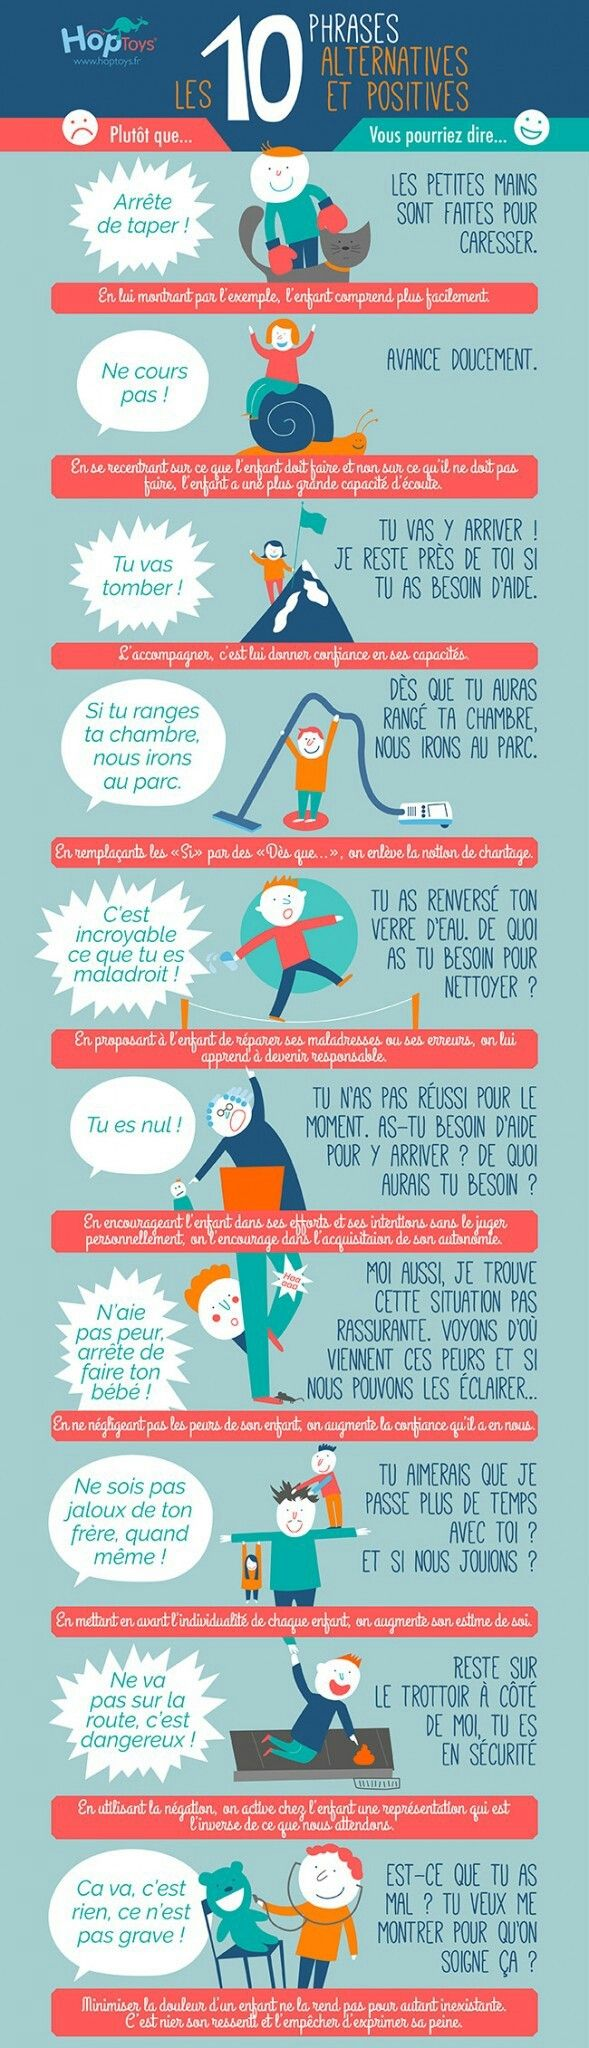 10 phrases bienveillantes